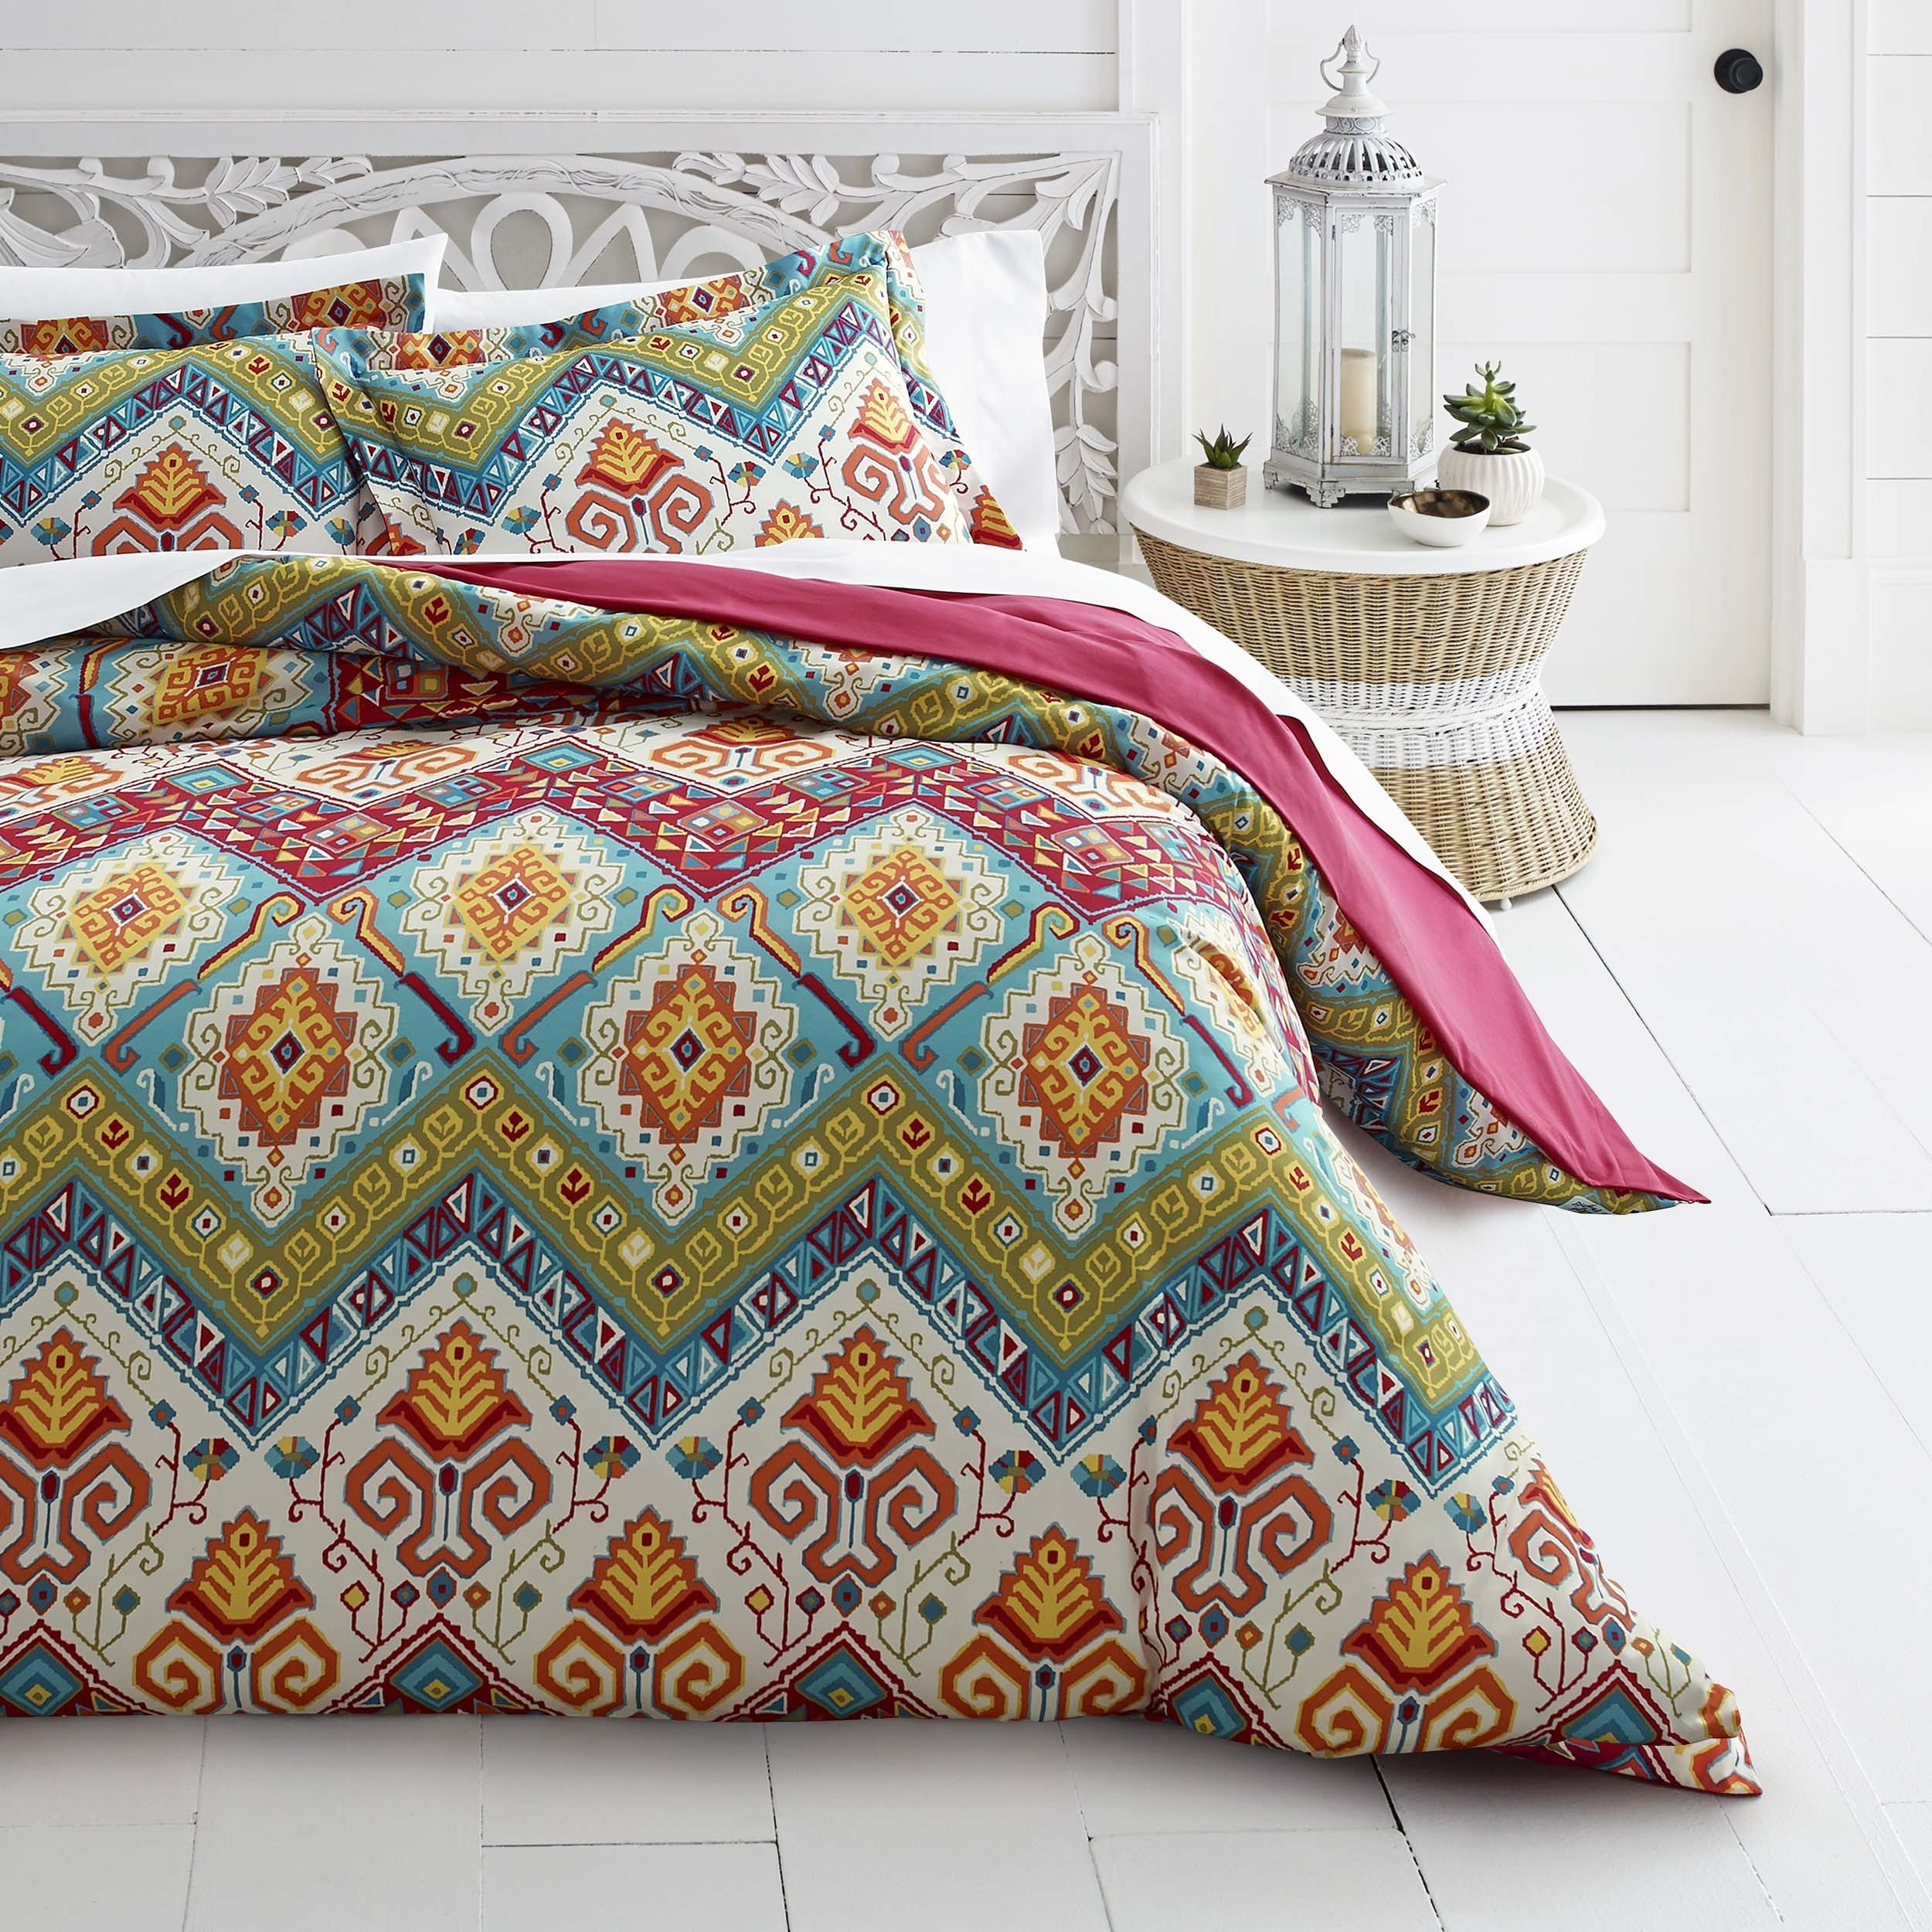 overstock free quilt bath moroccan cover set nights on azalea today duvet sale shipping skye product bedding